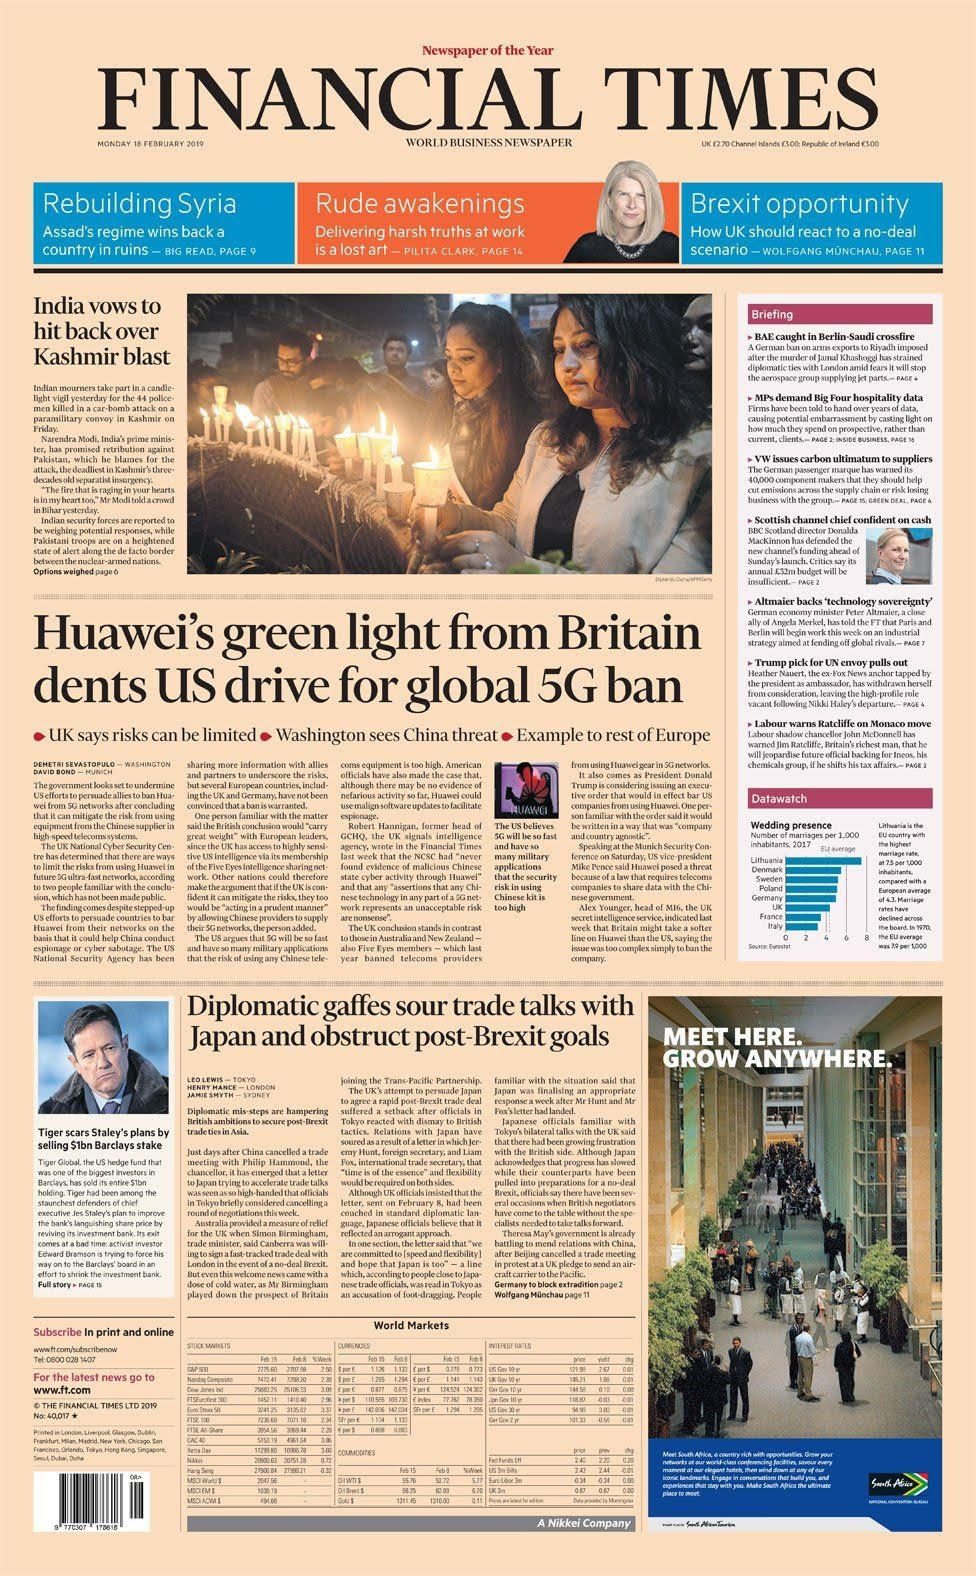 Financial Times front page 18 February 2019